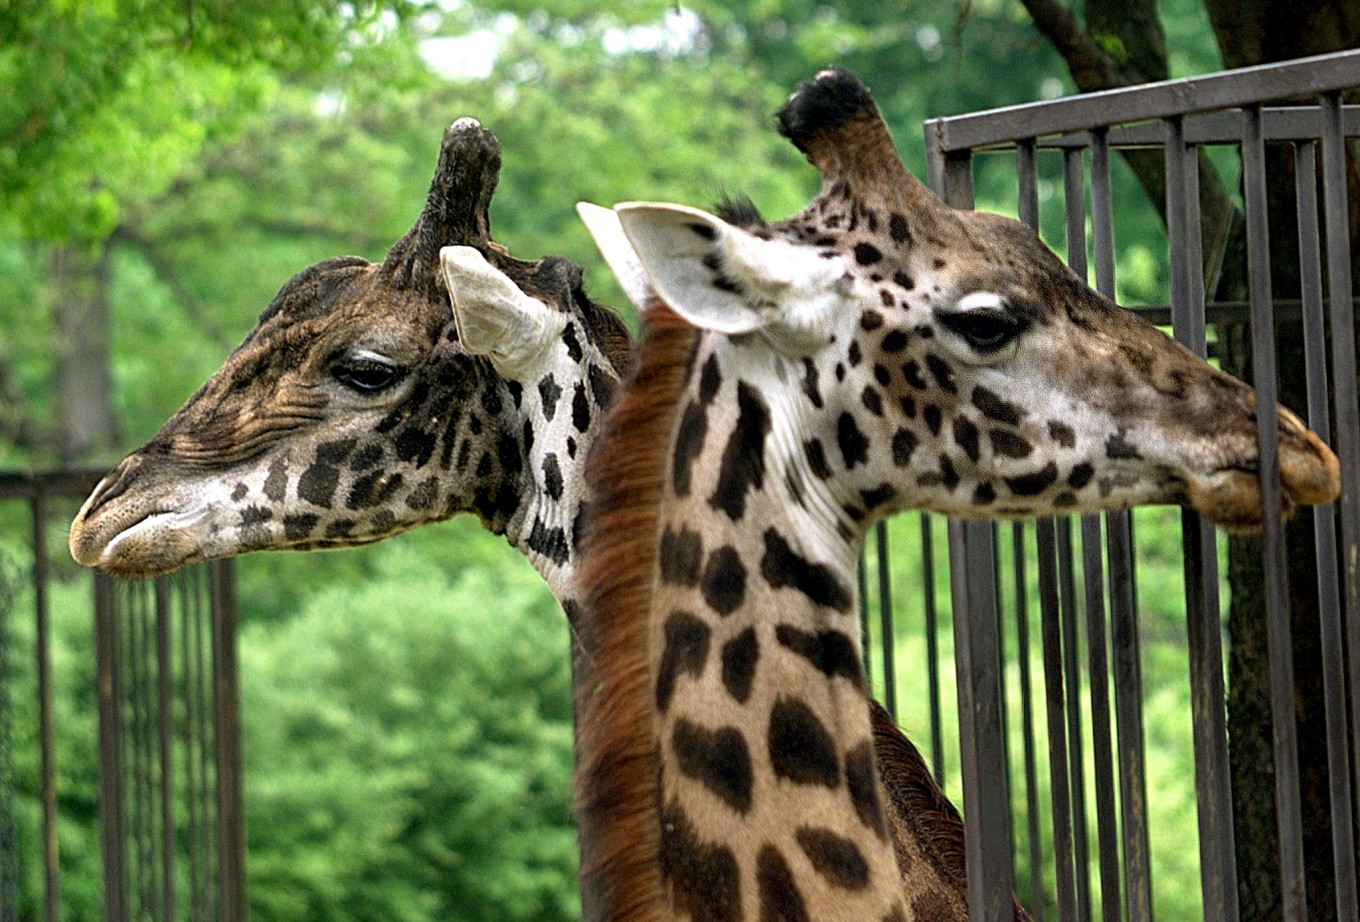 Two giraffes killed by lightning in Florida: Park